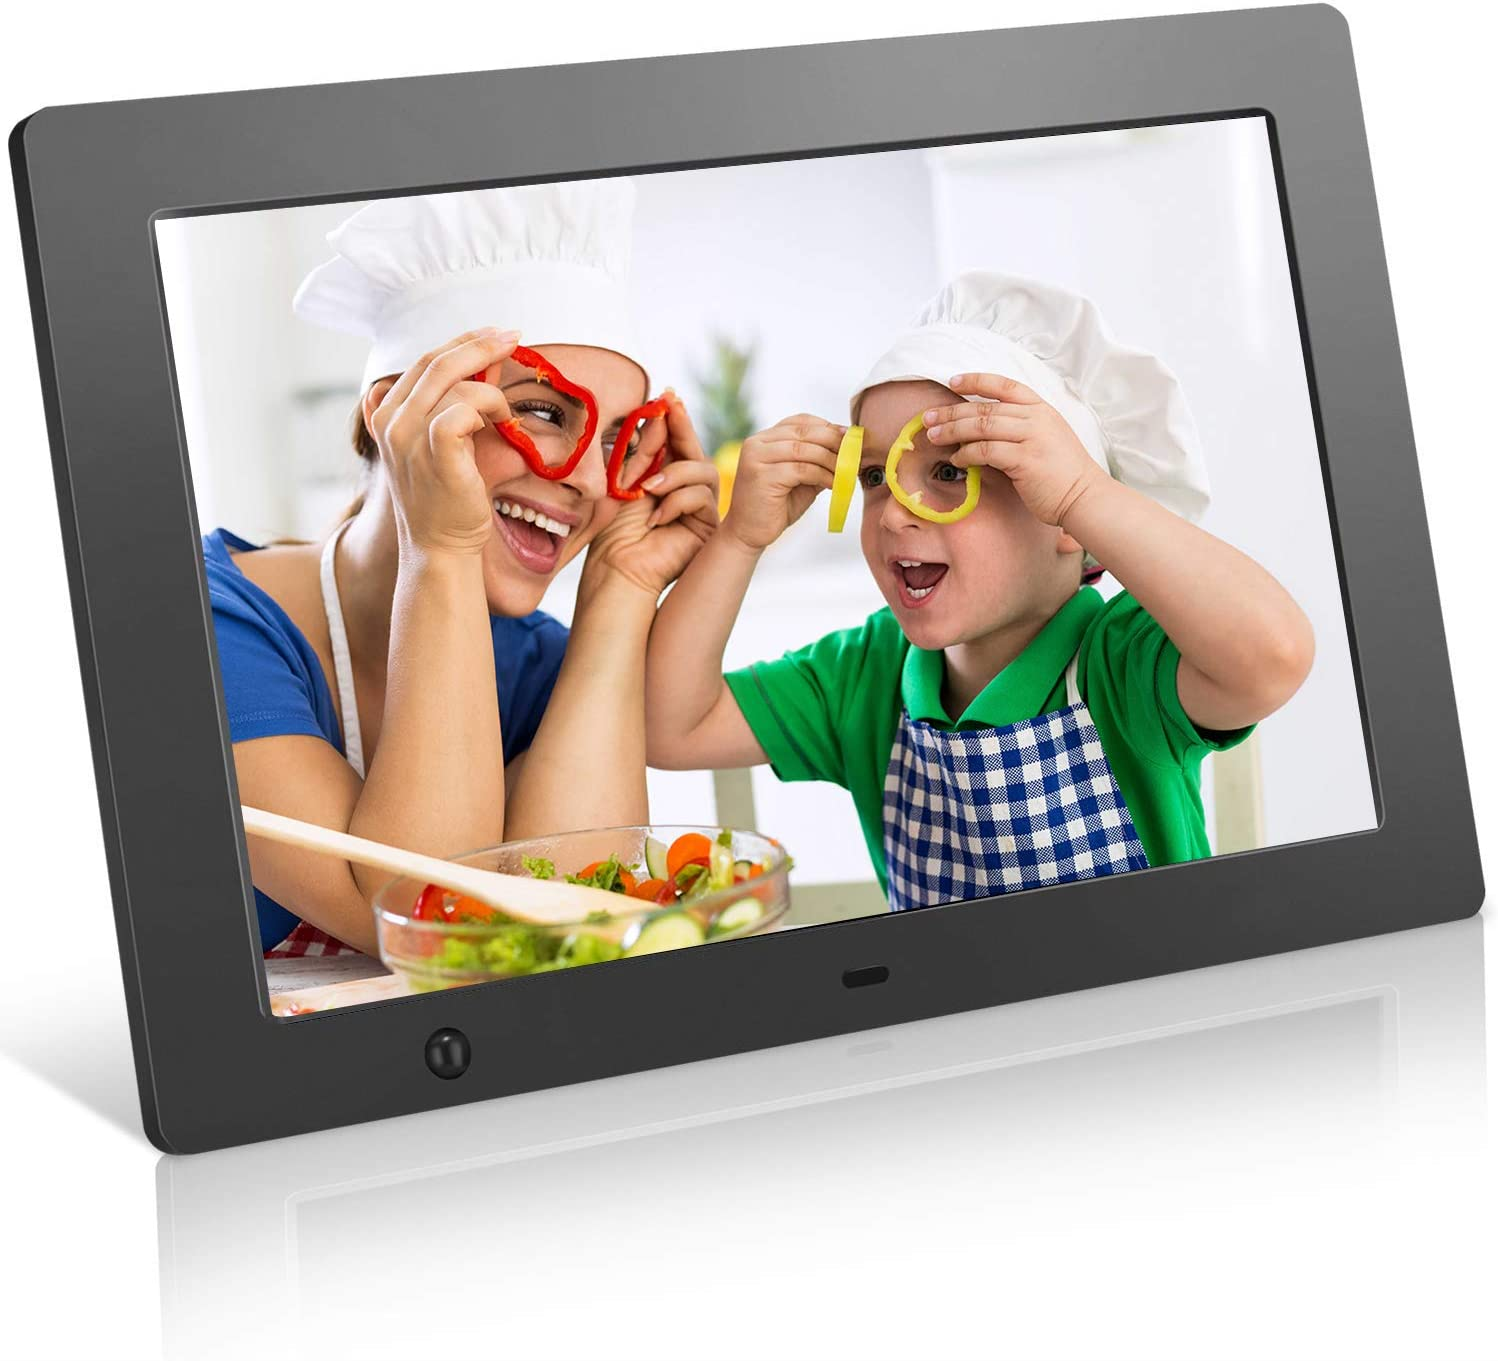 Digital Picture Frame 10.1 in, Digital Photo Frame Video Player with Motion Sensor Electronics Picture Frame High Resolution 1280x800 IPS Background Music Stereo/MP3/Calendar/Clock/Time/Remote Control